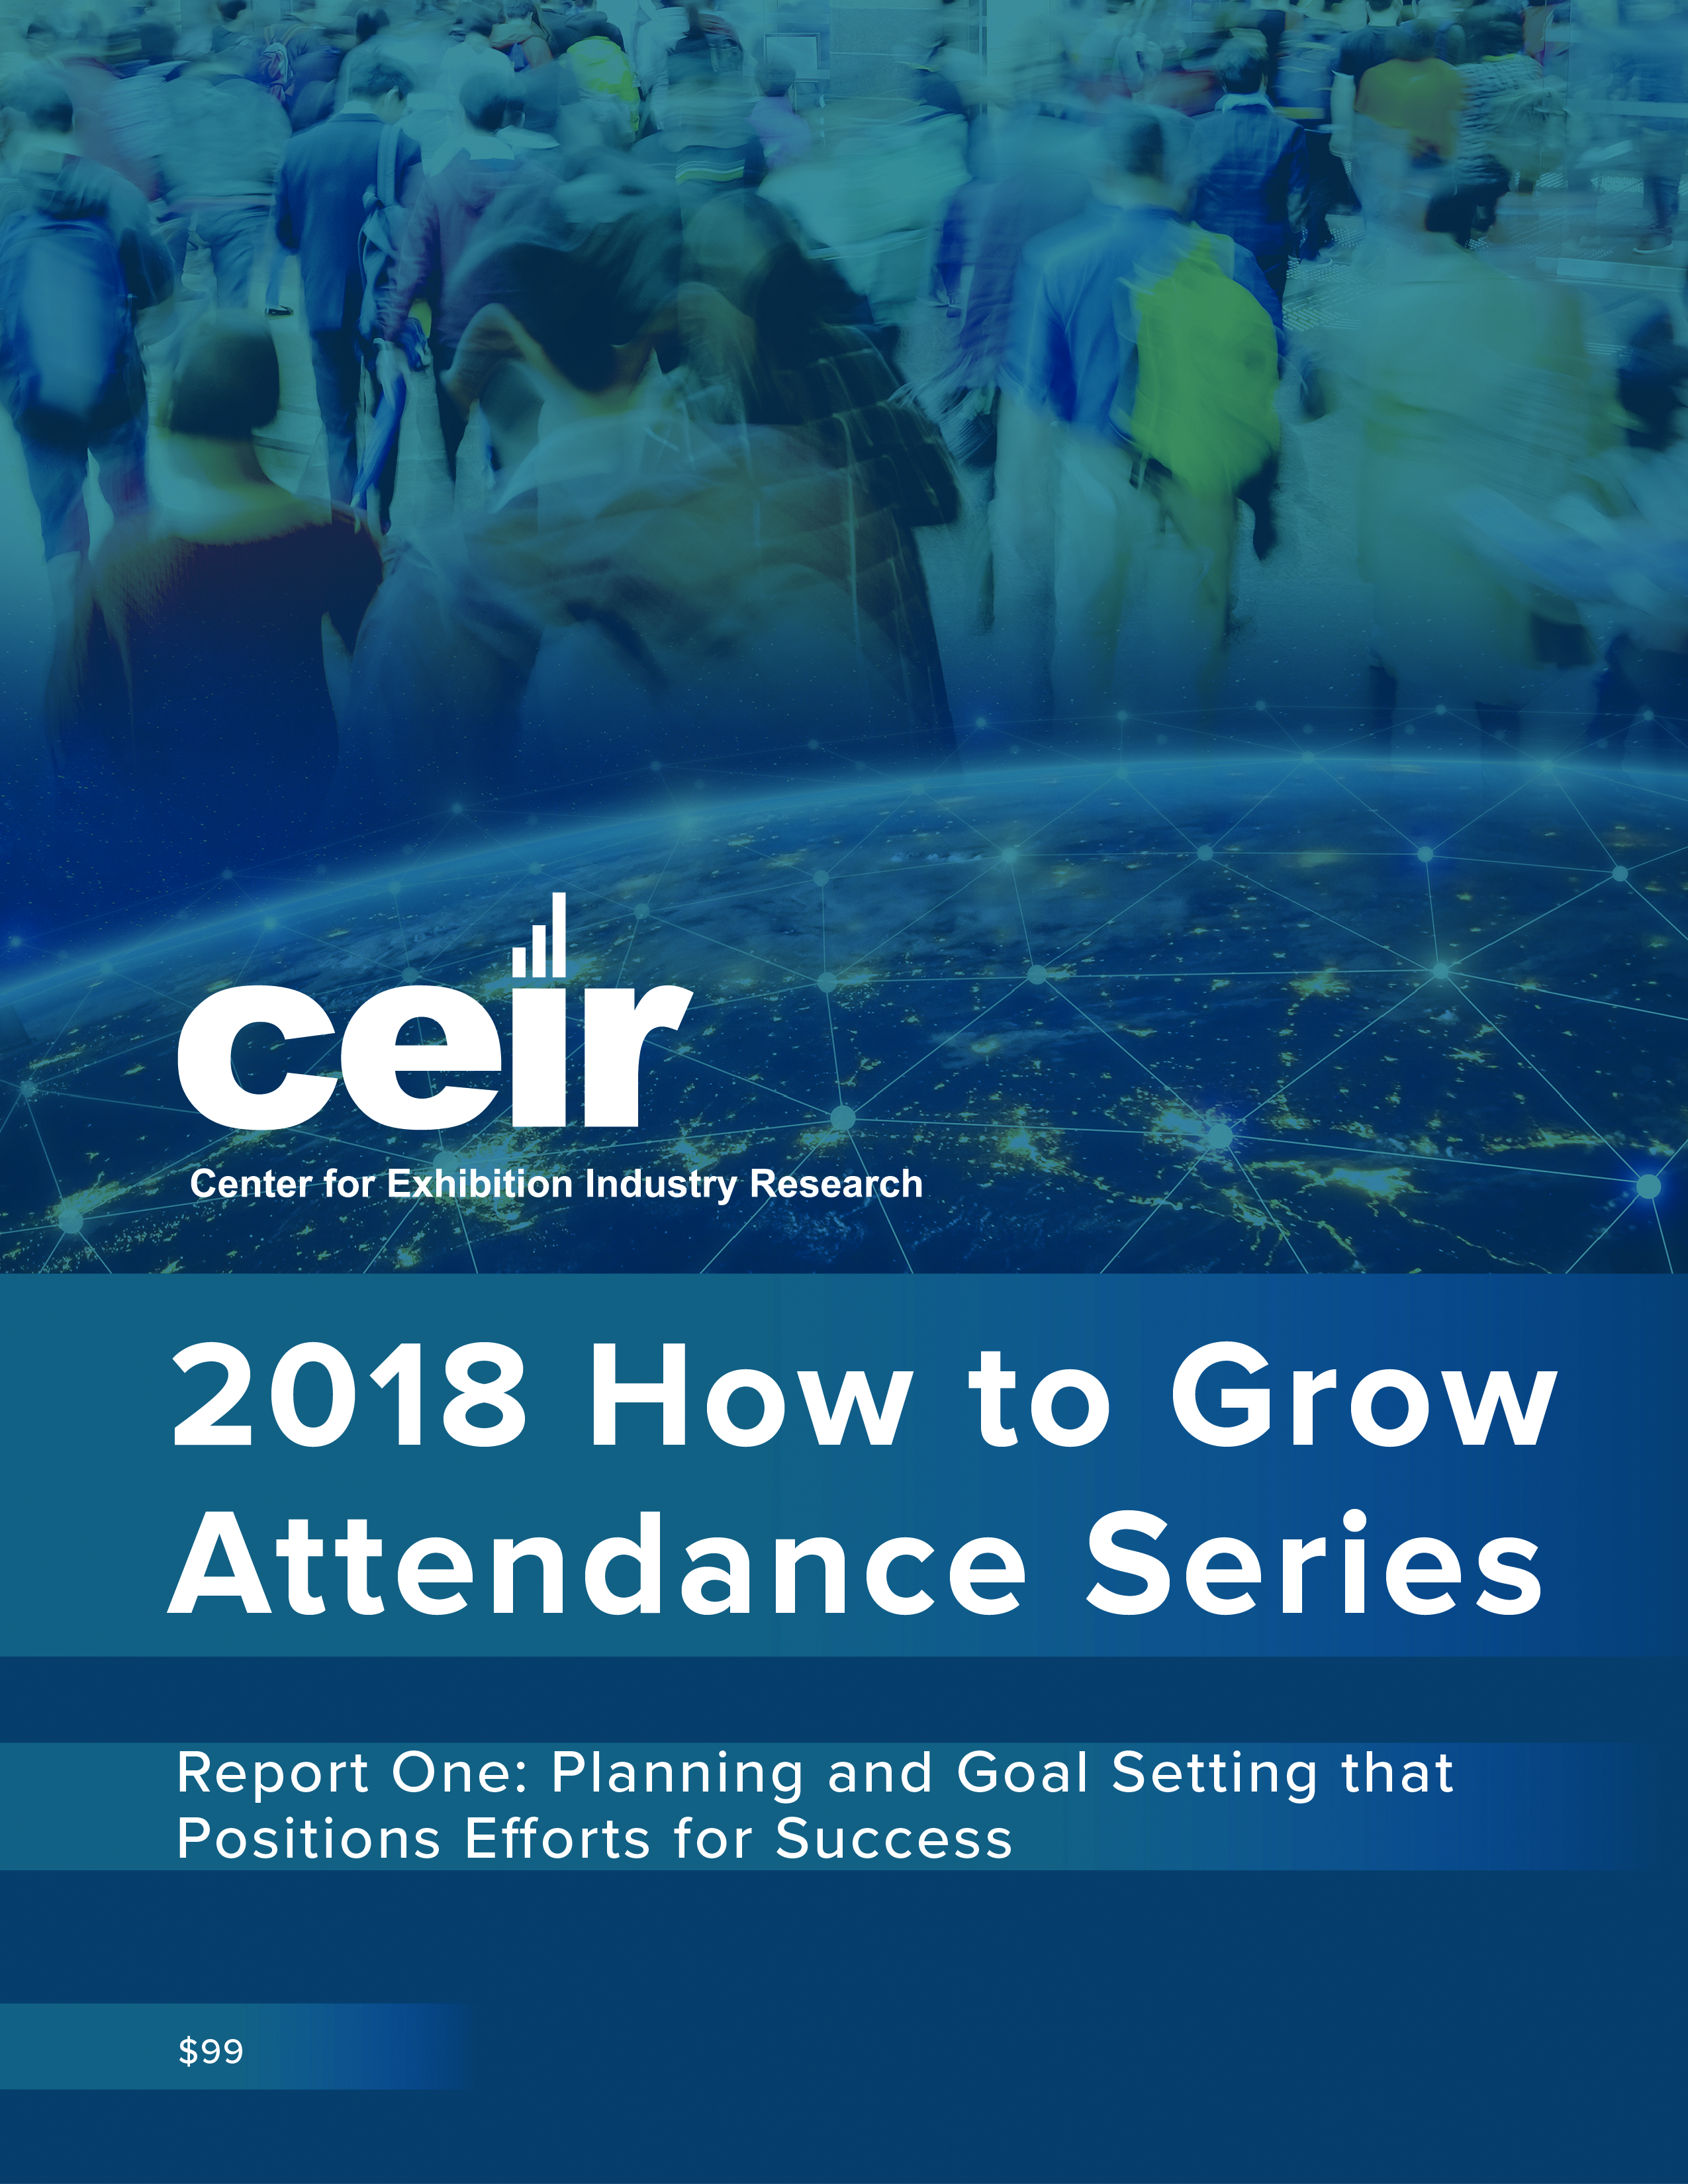 2018 How to Grow Attendance: Part 1 cover image